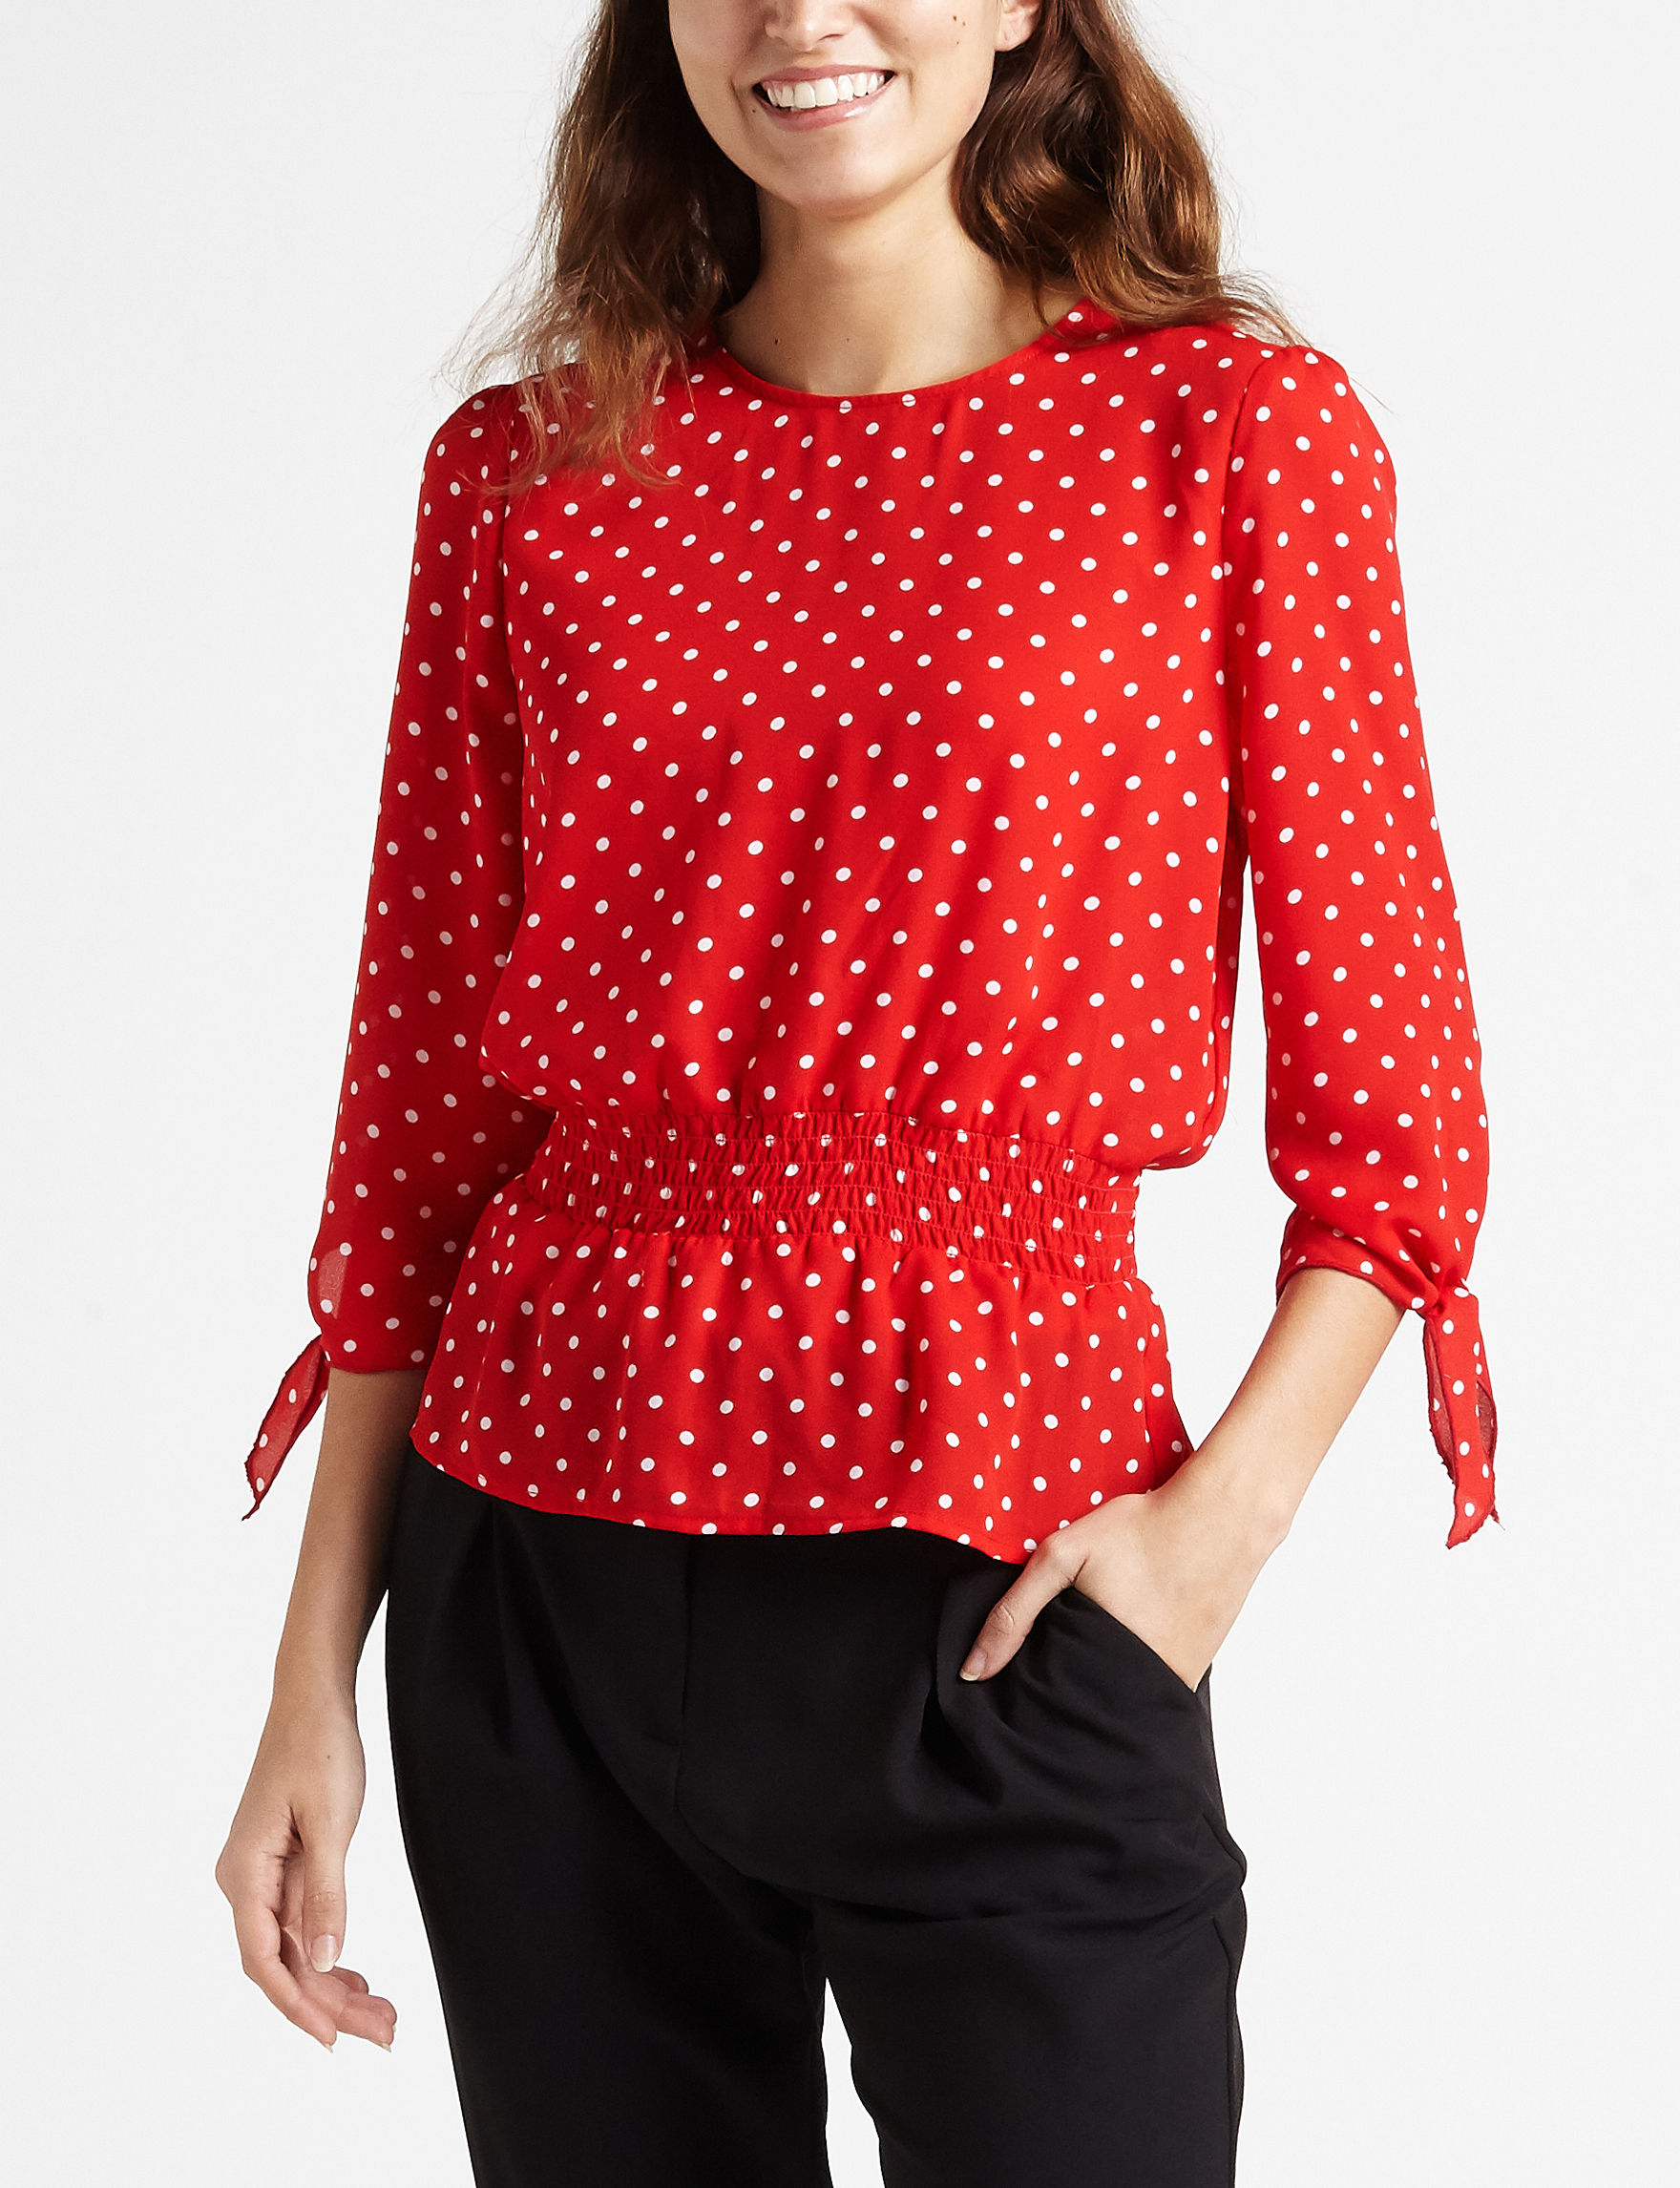 Wishful Park Red Shirts & Blouses